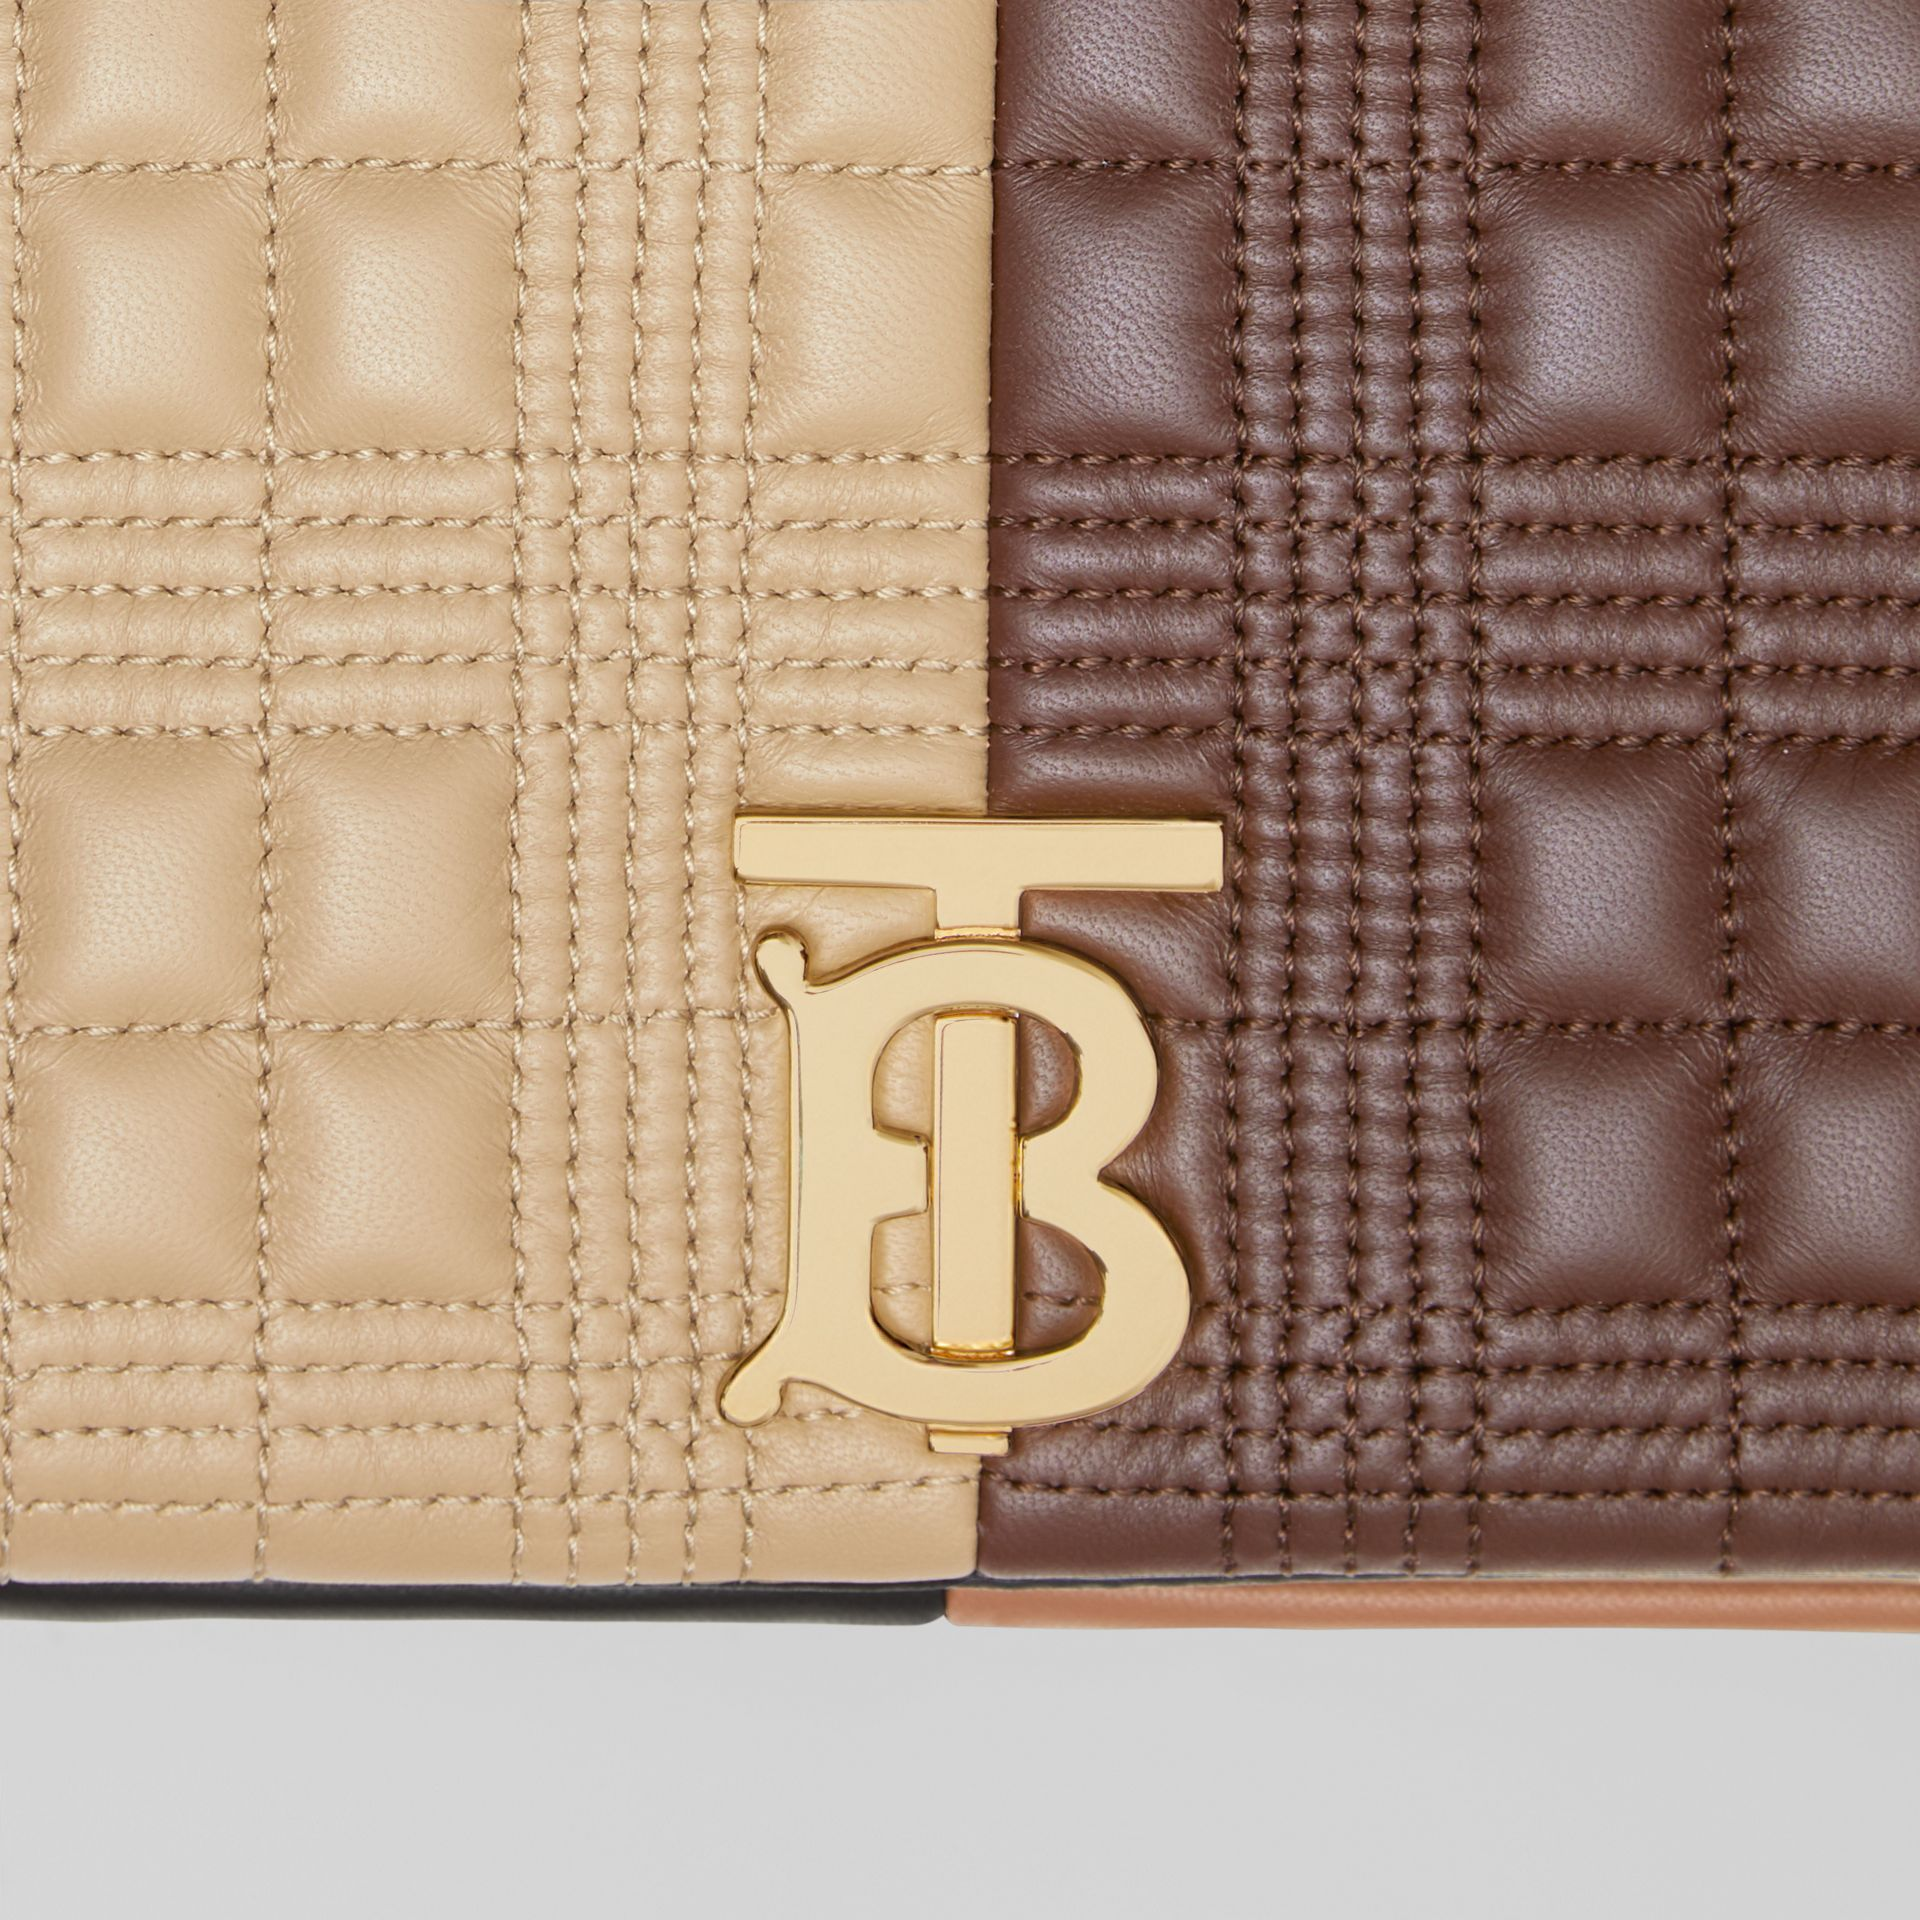 Small Quilted Colour Block Lambskin Lola Bag in Soft Fawn/dark Mocha - Women | Burberry Canada - gallery image 1